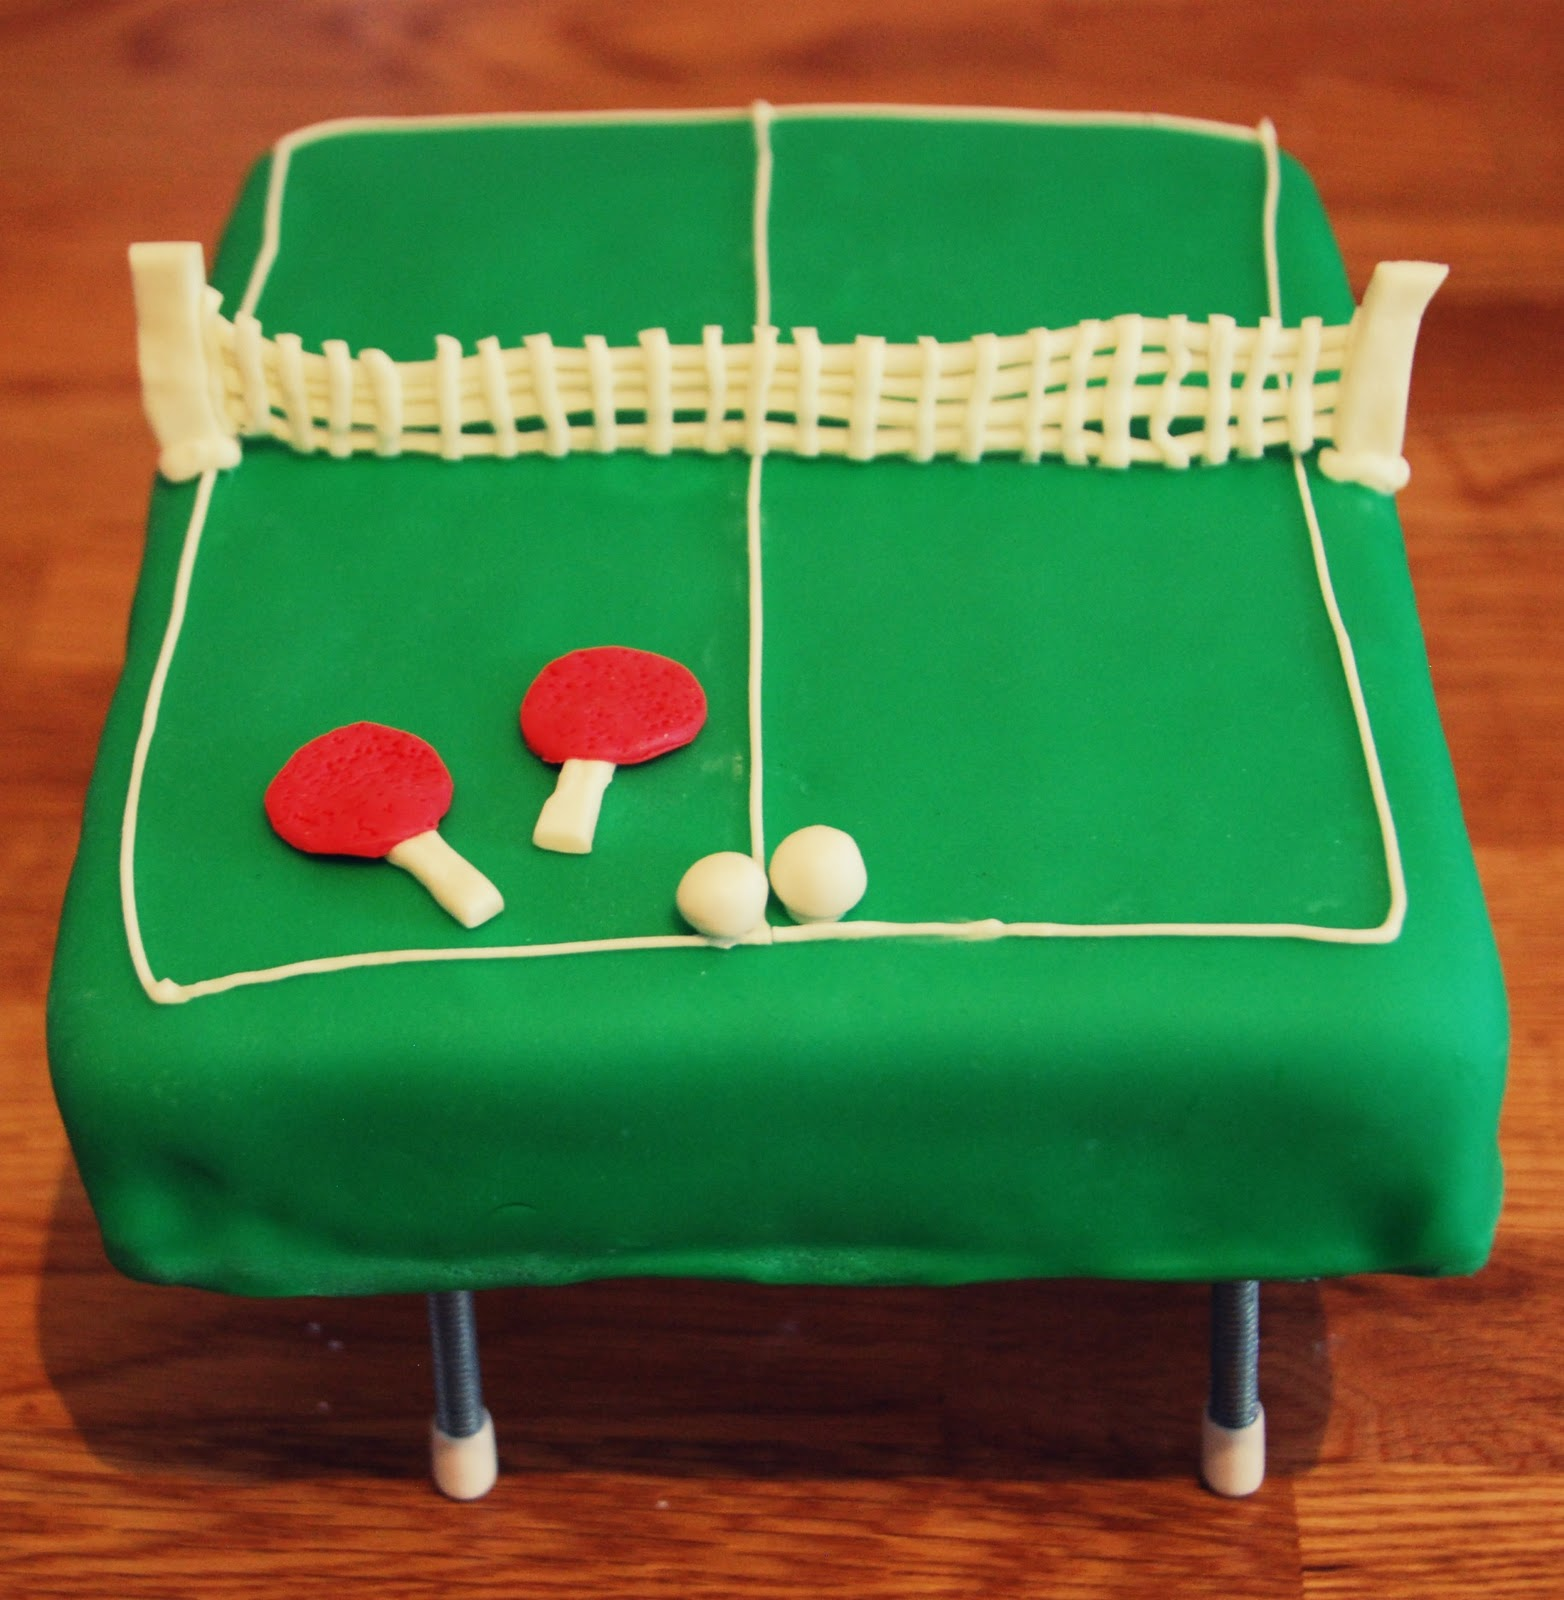 Ping Pong Table Cake